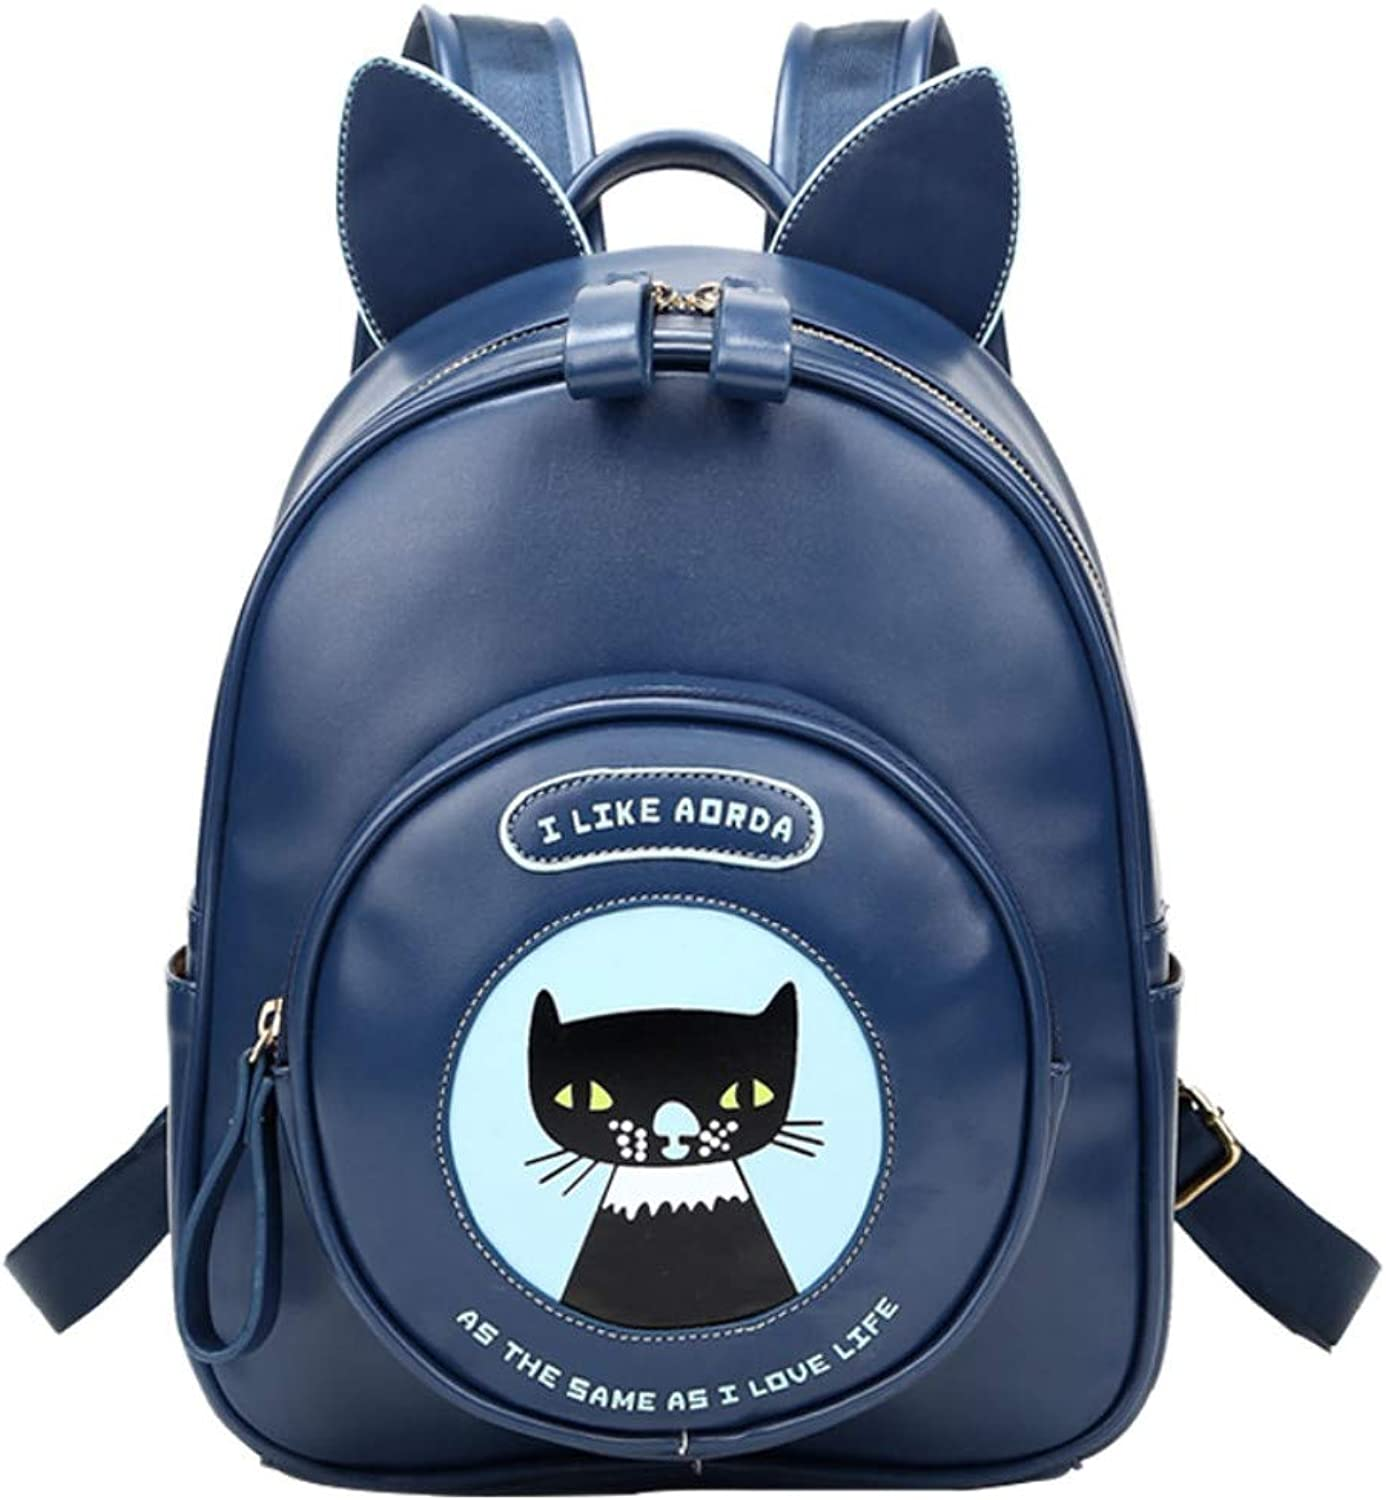 Laptop BackpackBusiness Computer Bag Casual Pu Shoulder Bag Handbags Travel Bag Cute College Wind Hiking Riding Camping Bag